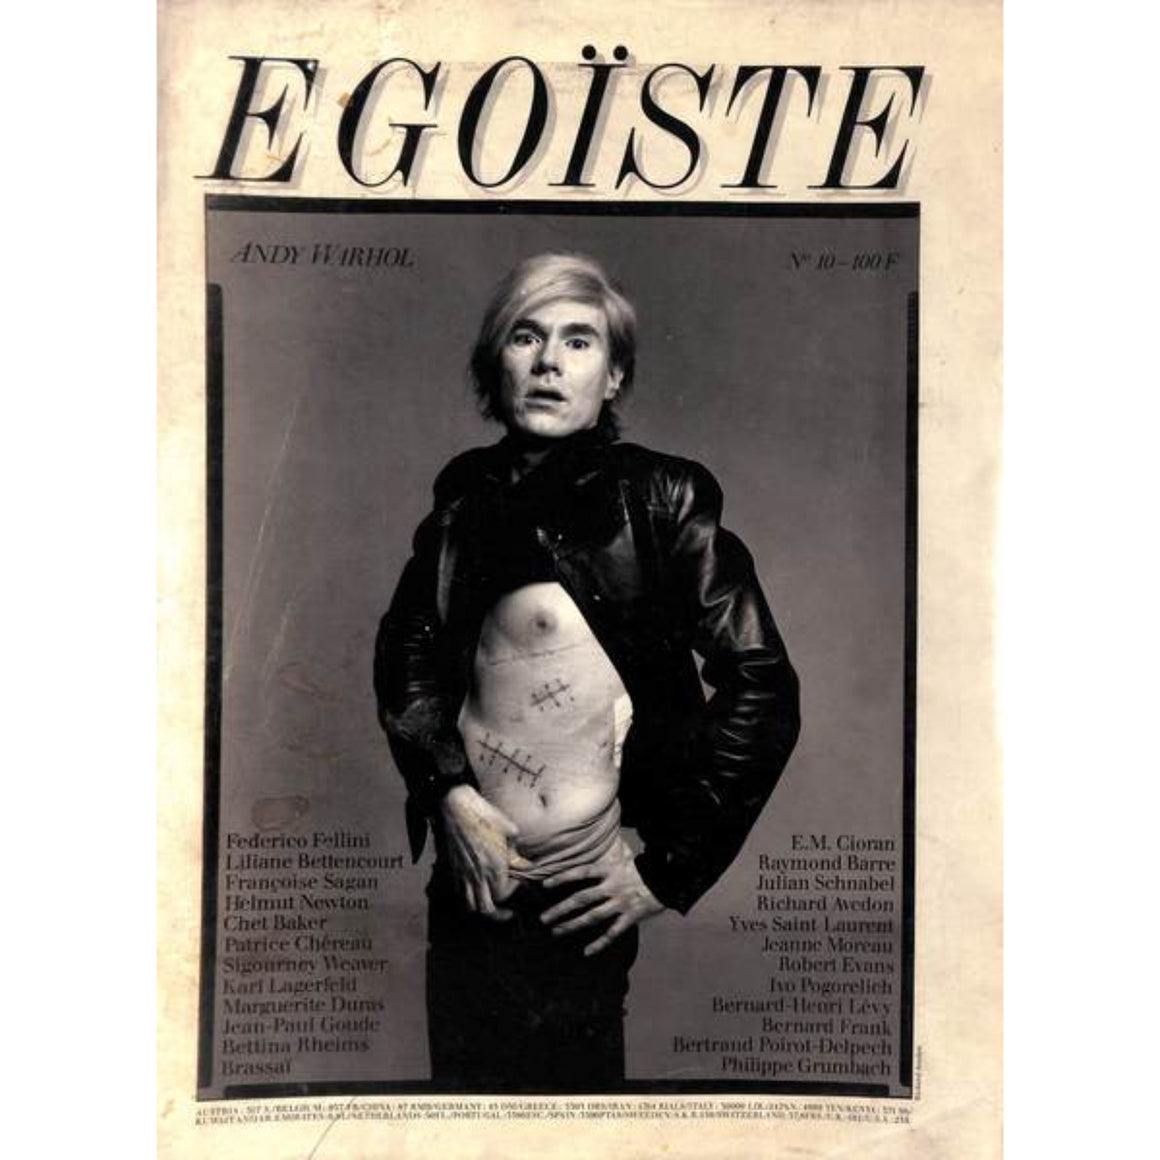 'Egoiste Andy Warhol No 10' Photography by Richard Avedon